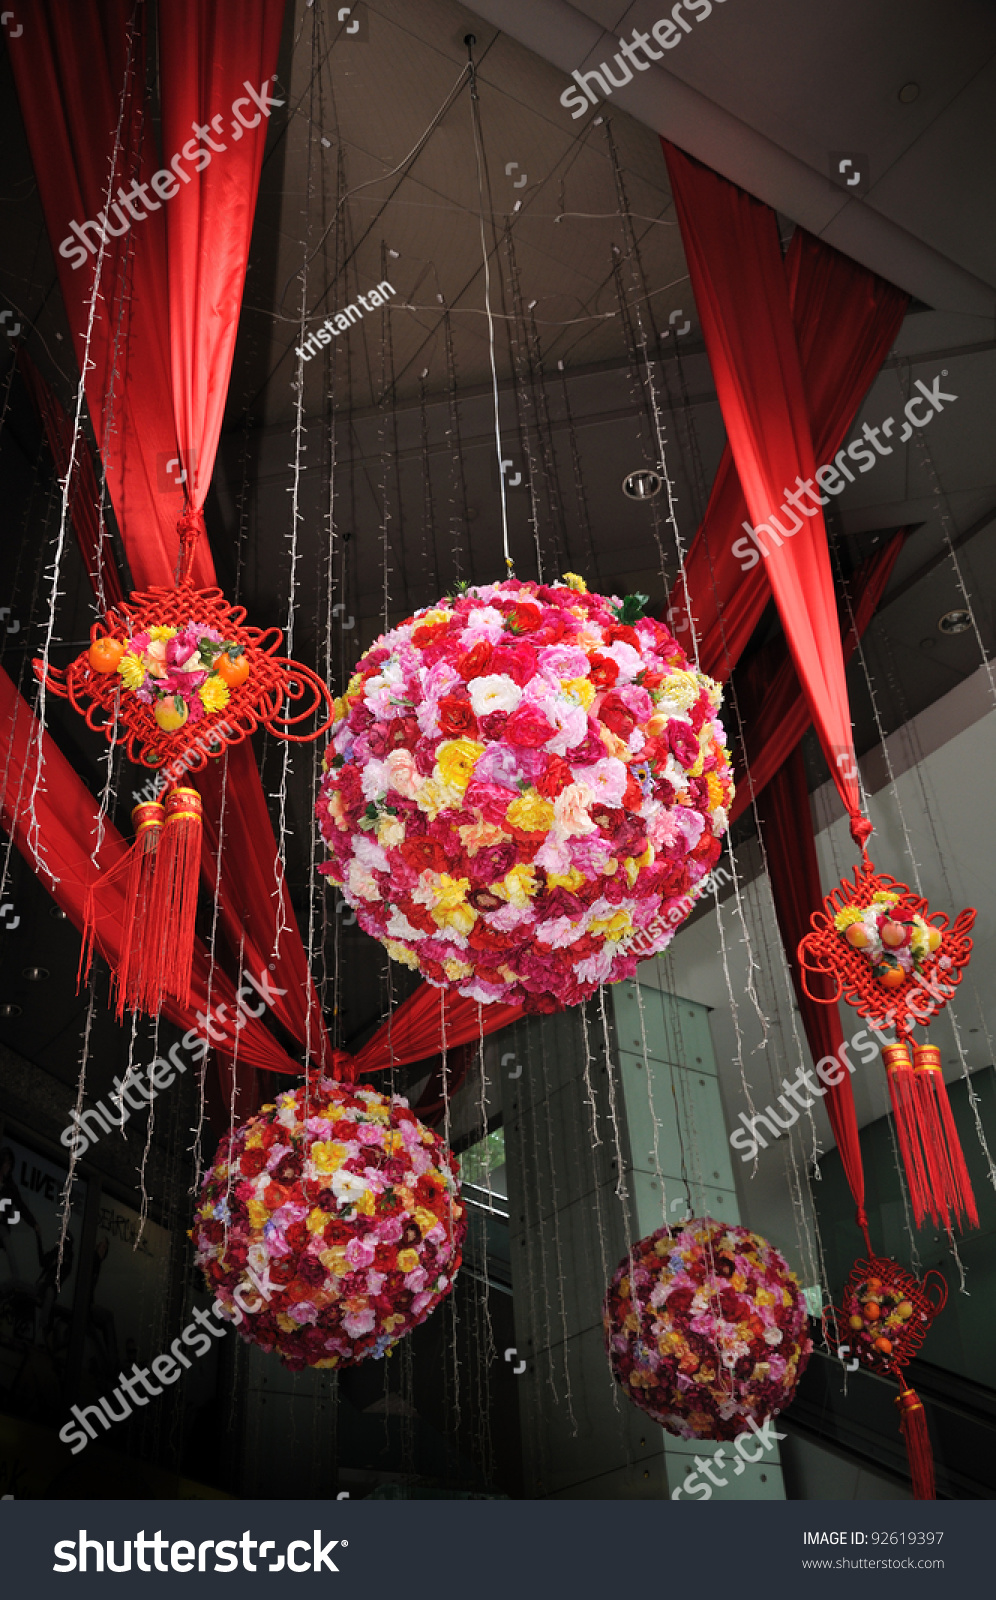 Singapore january 13 chinese new year stock photo 92619397 New flower decoration